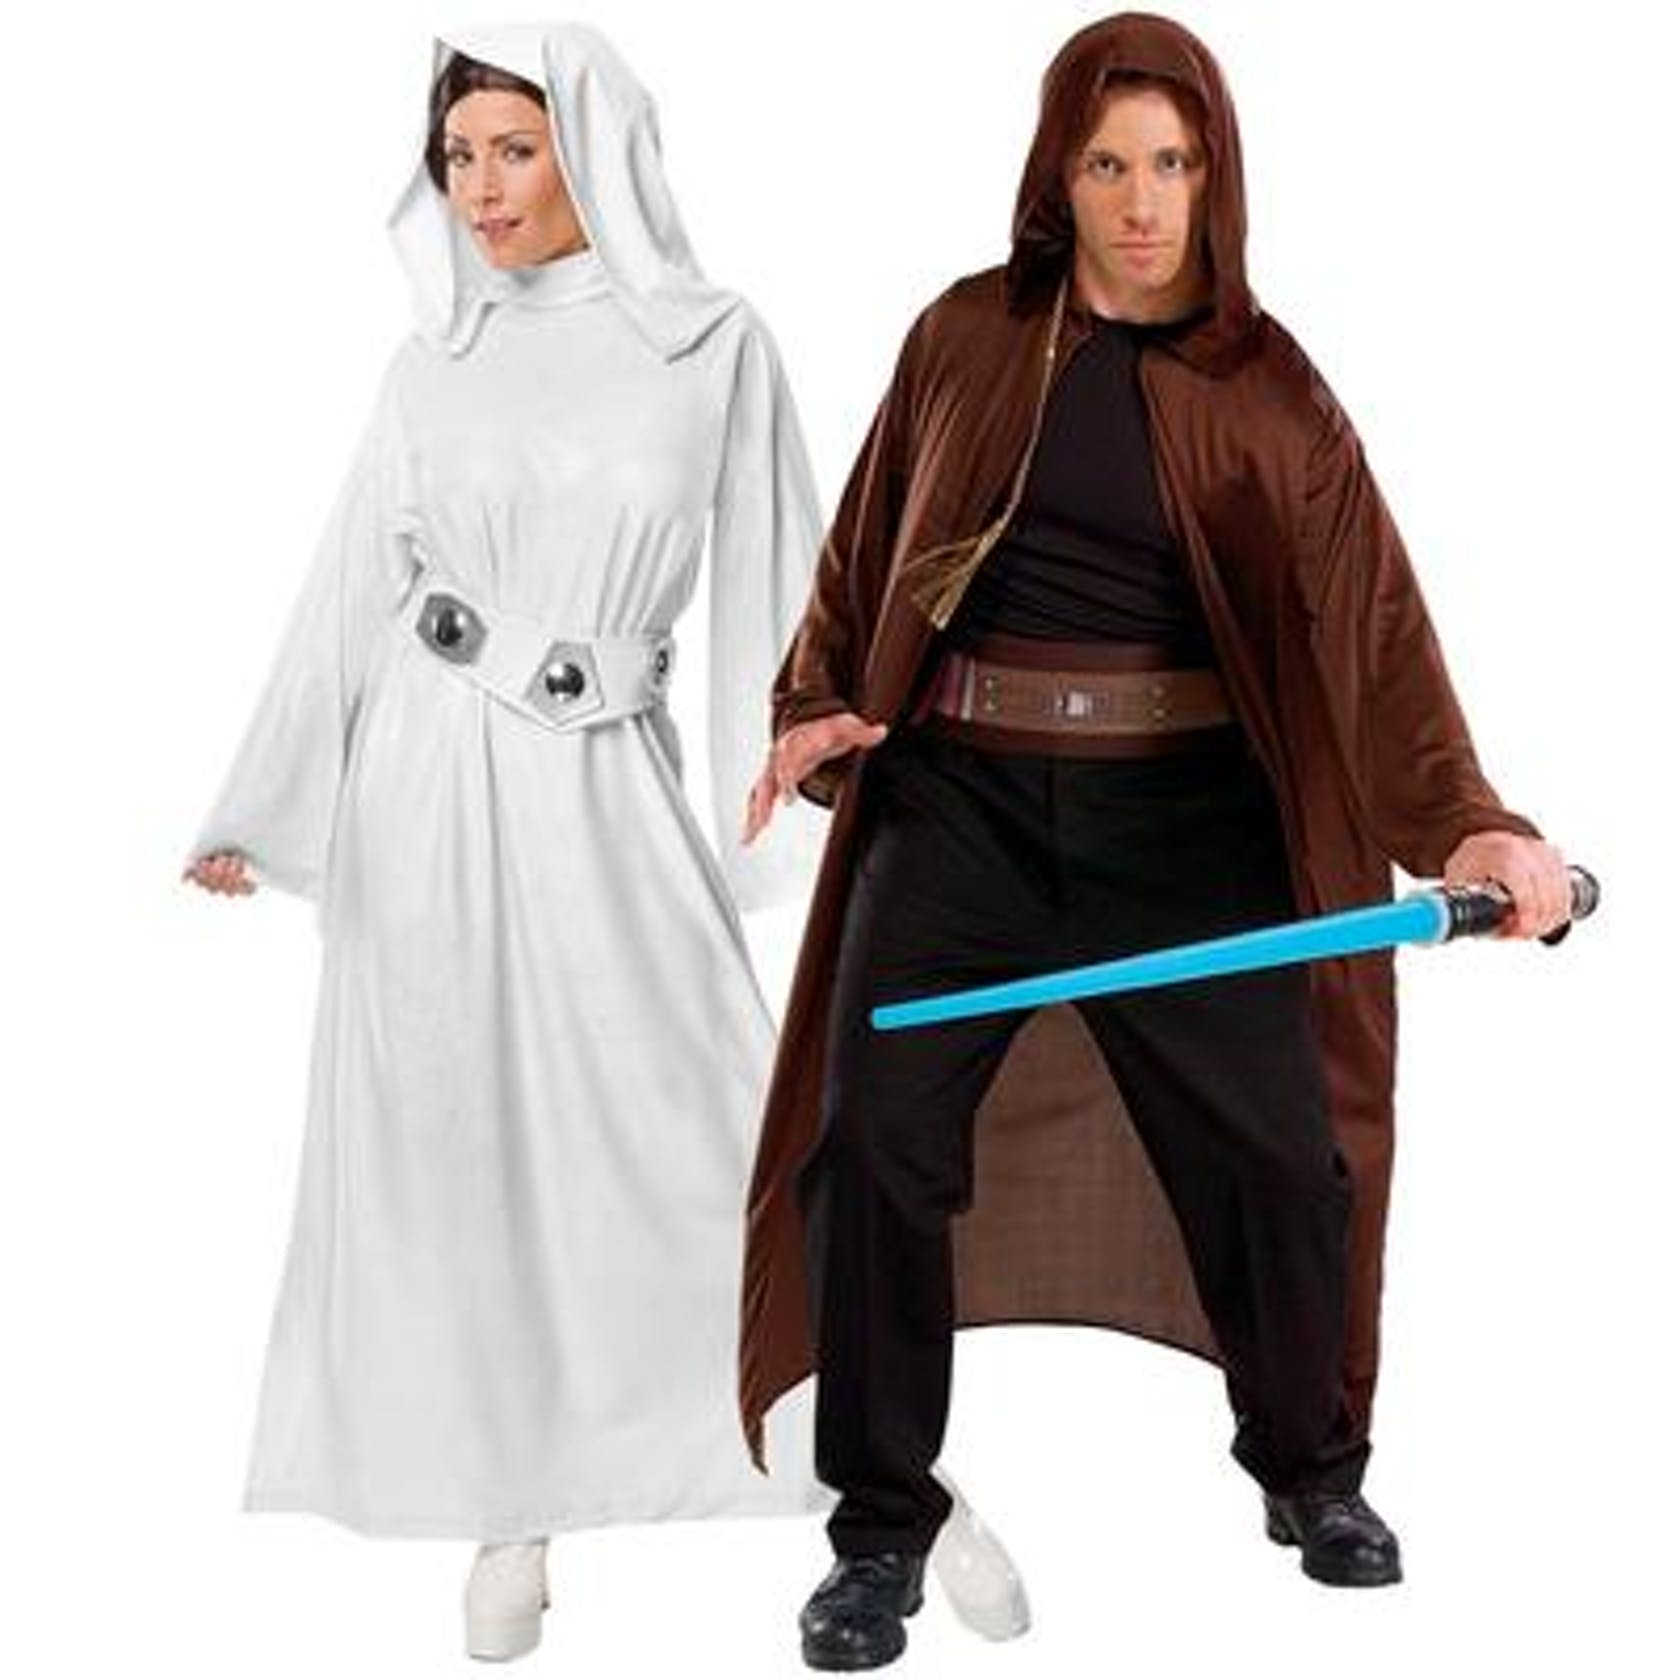 Shows a couple dressed as Star Wars characters